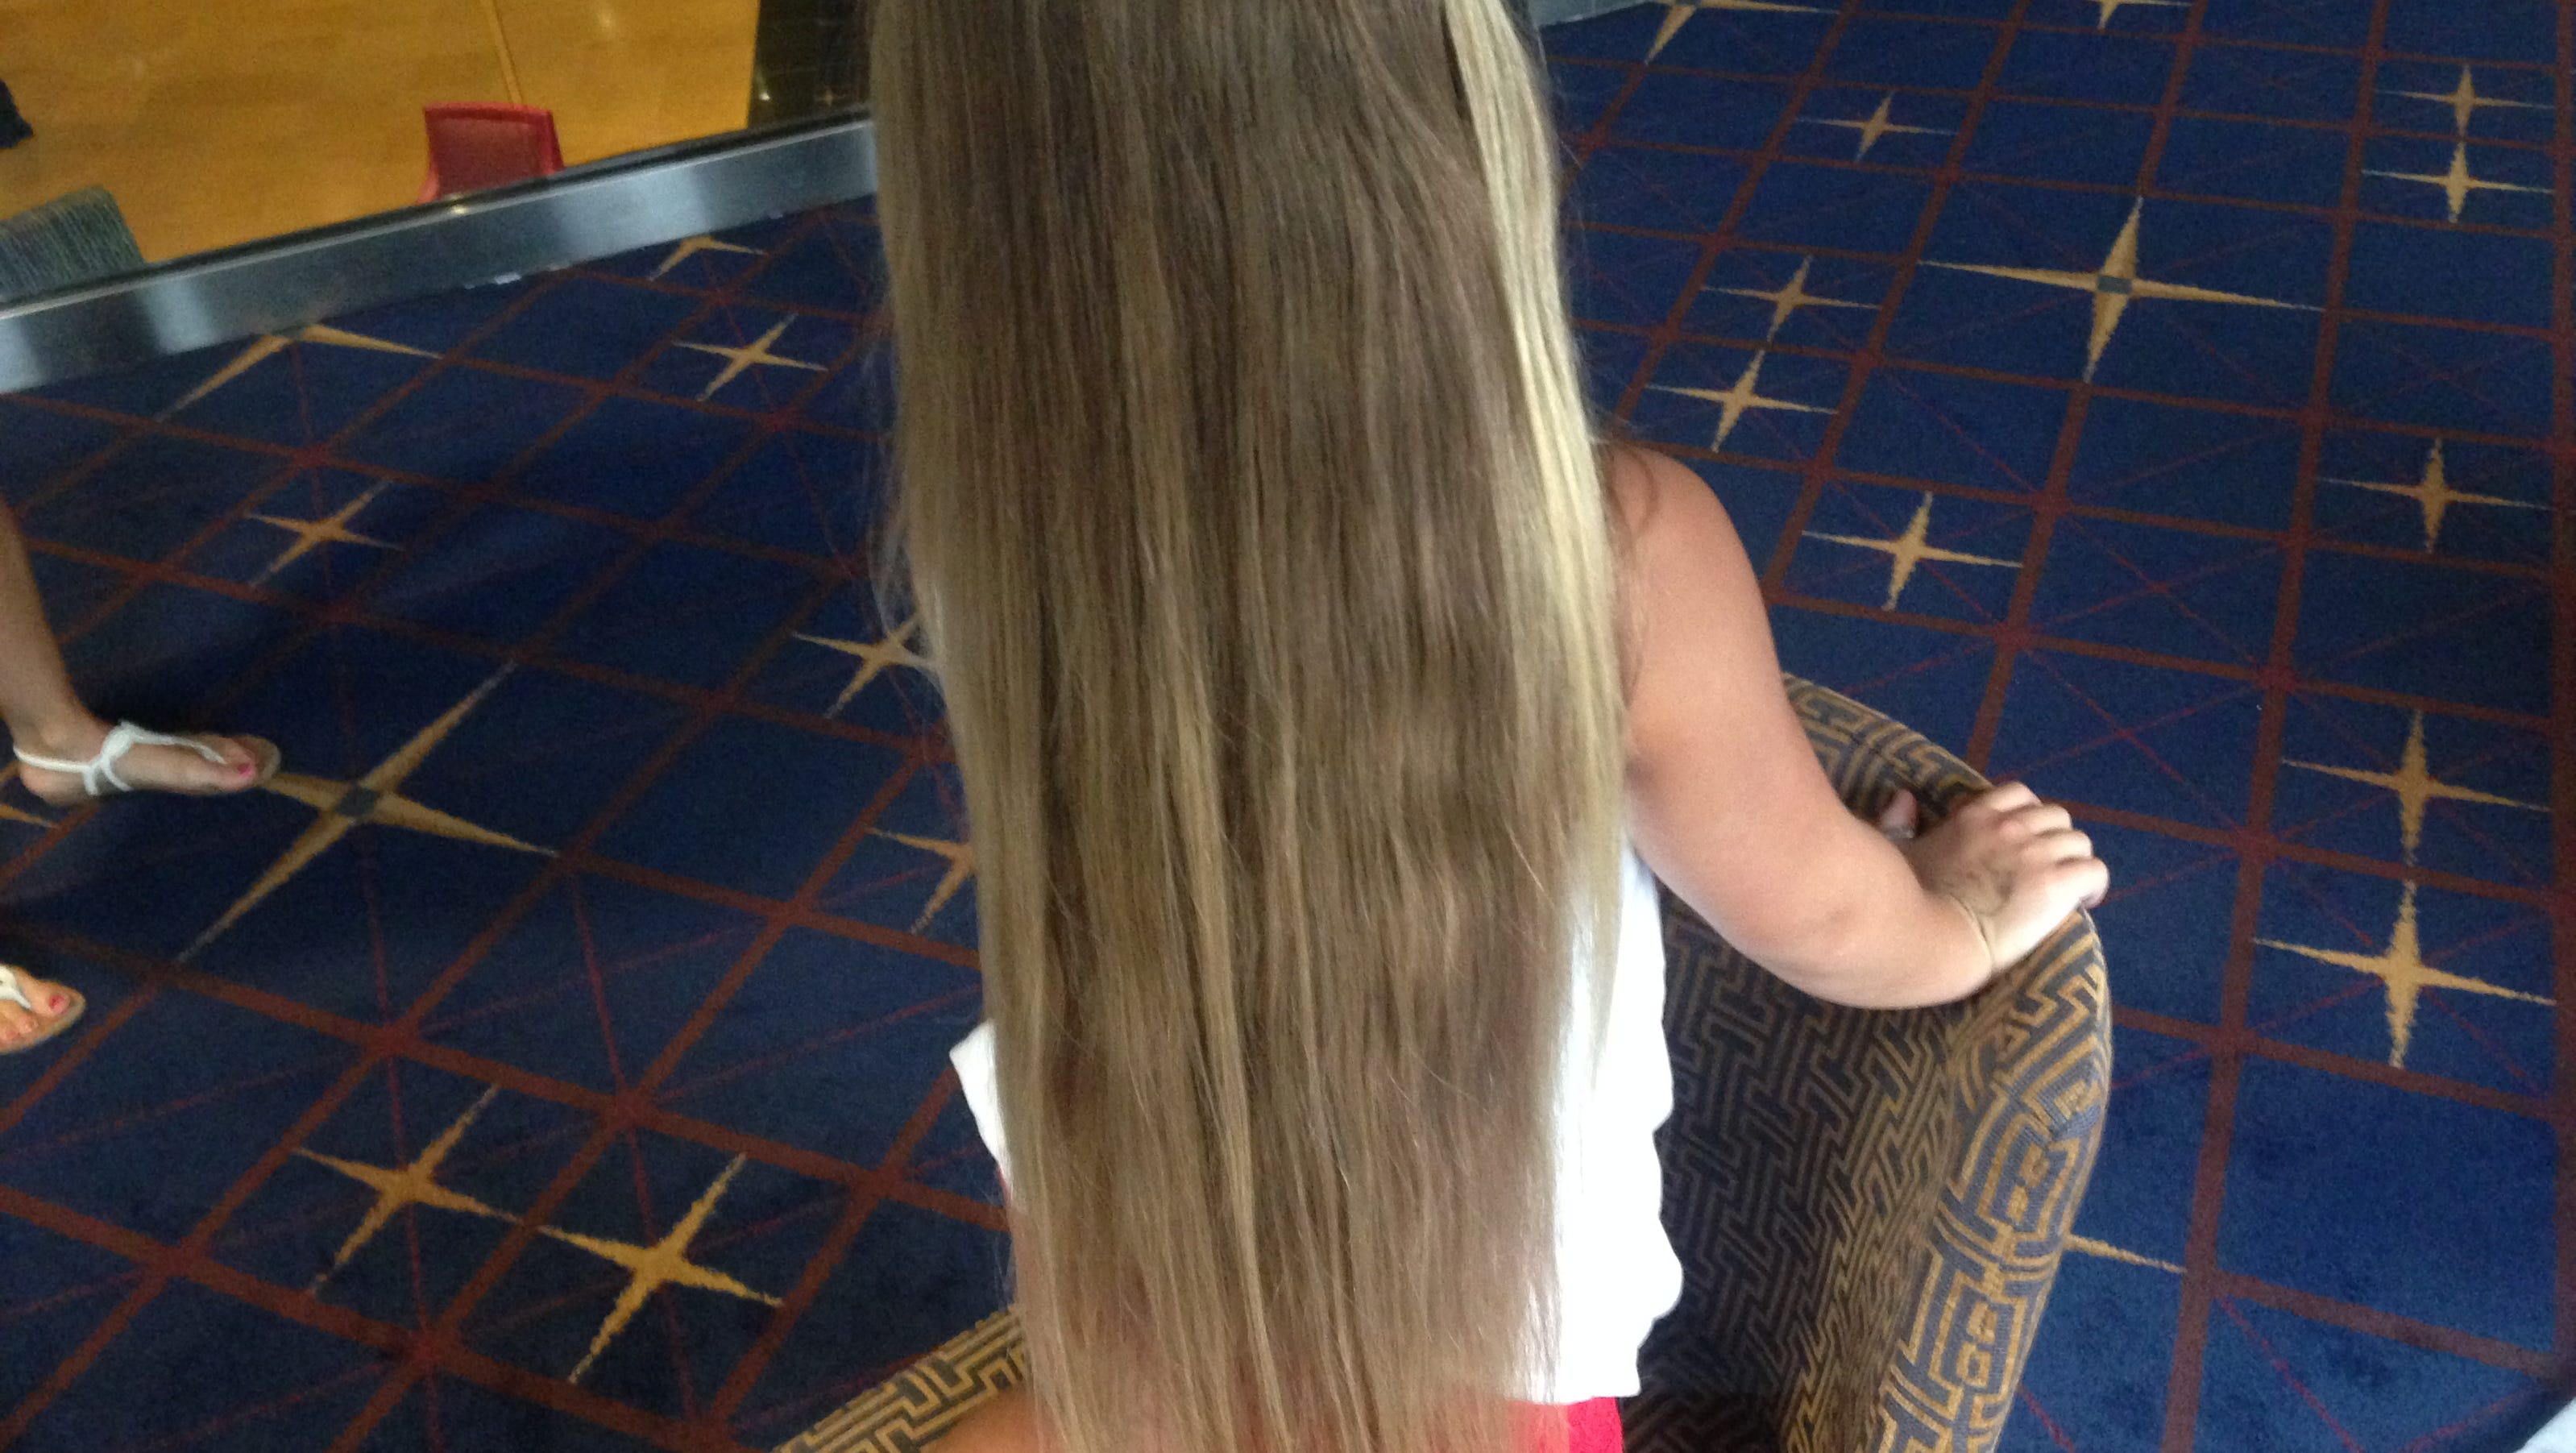 Family drives from Louisiana to donate to Wigs for Kids